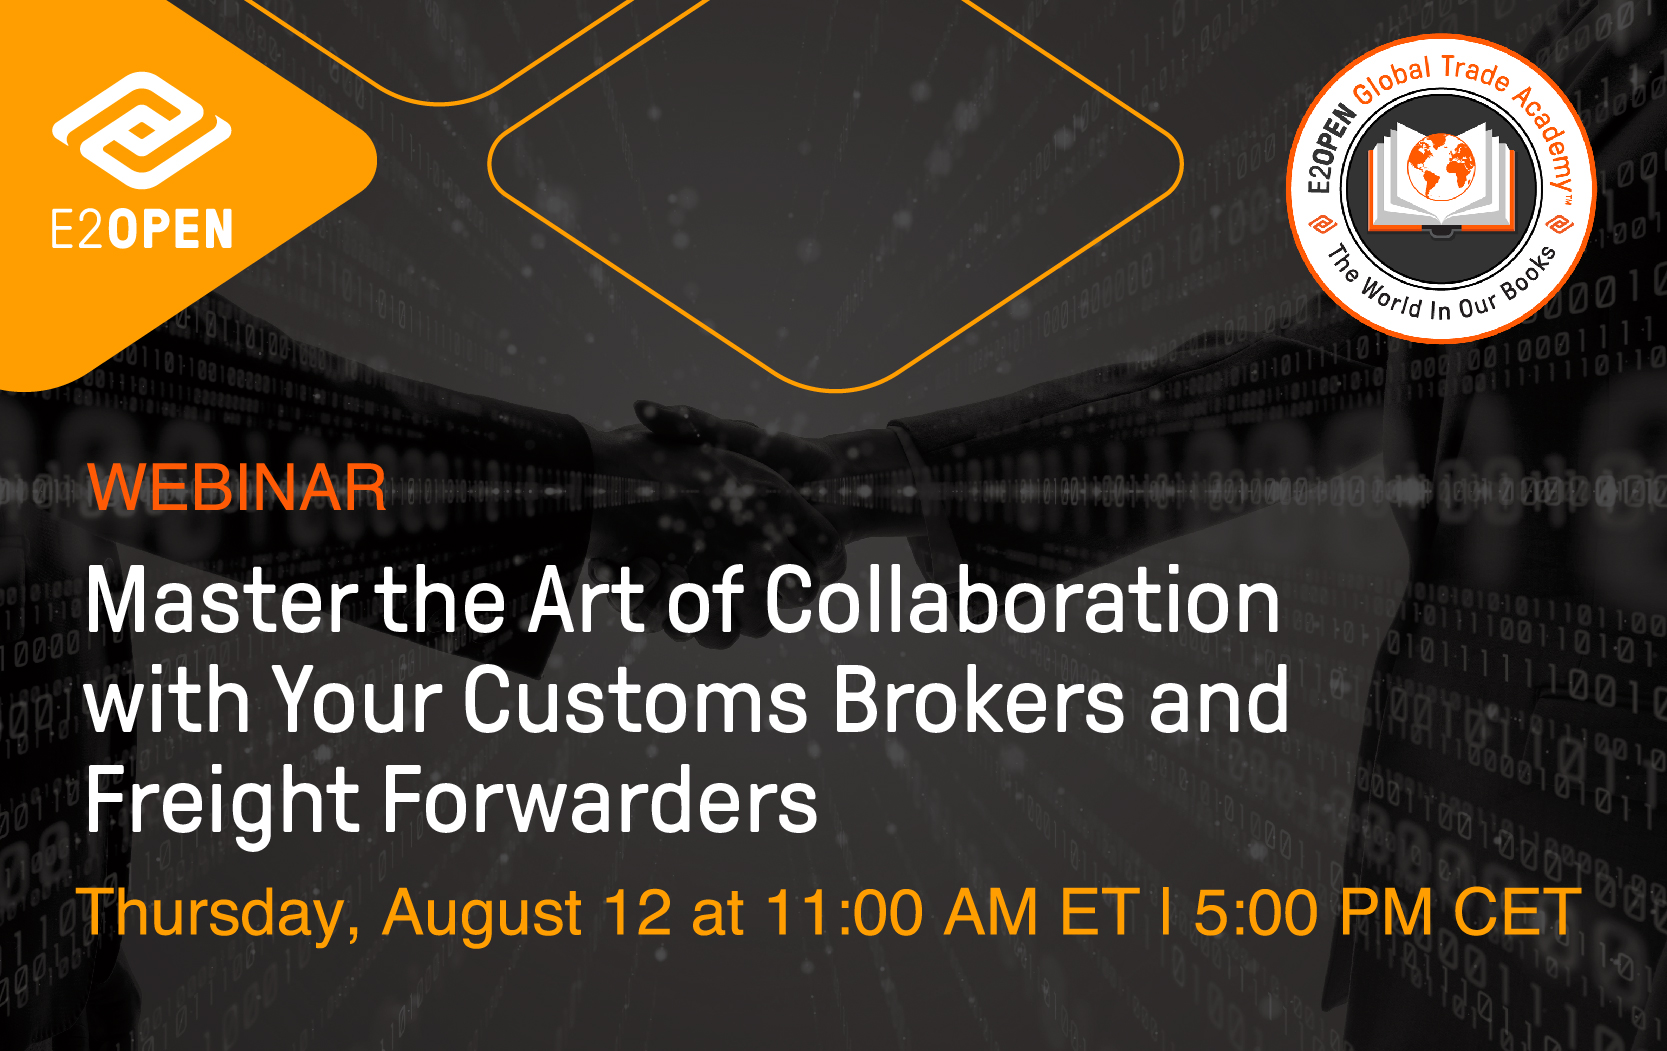 Master the Art of Collaboration with Your Customs Brokers and Freight Forwarders